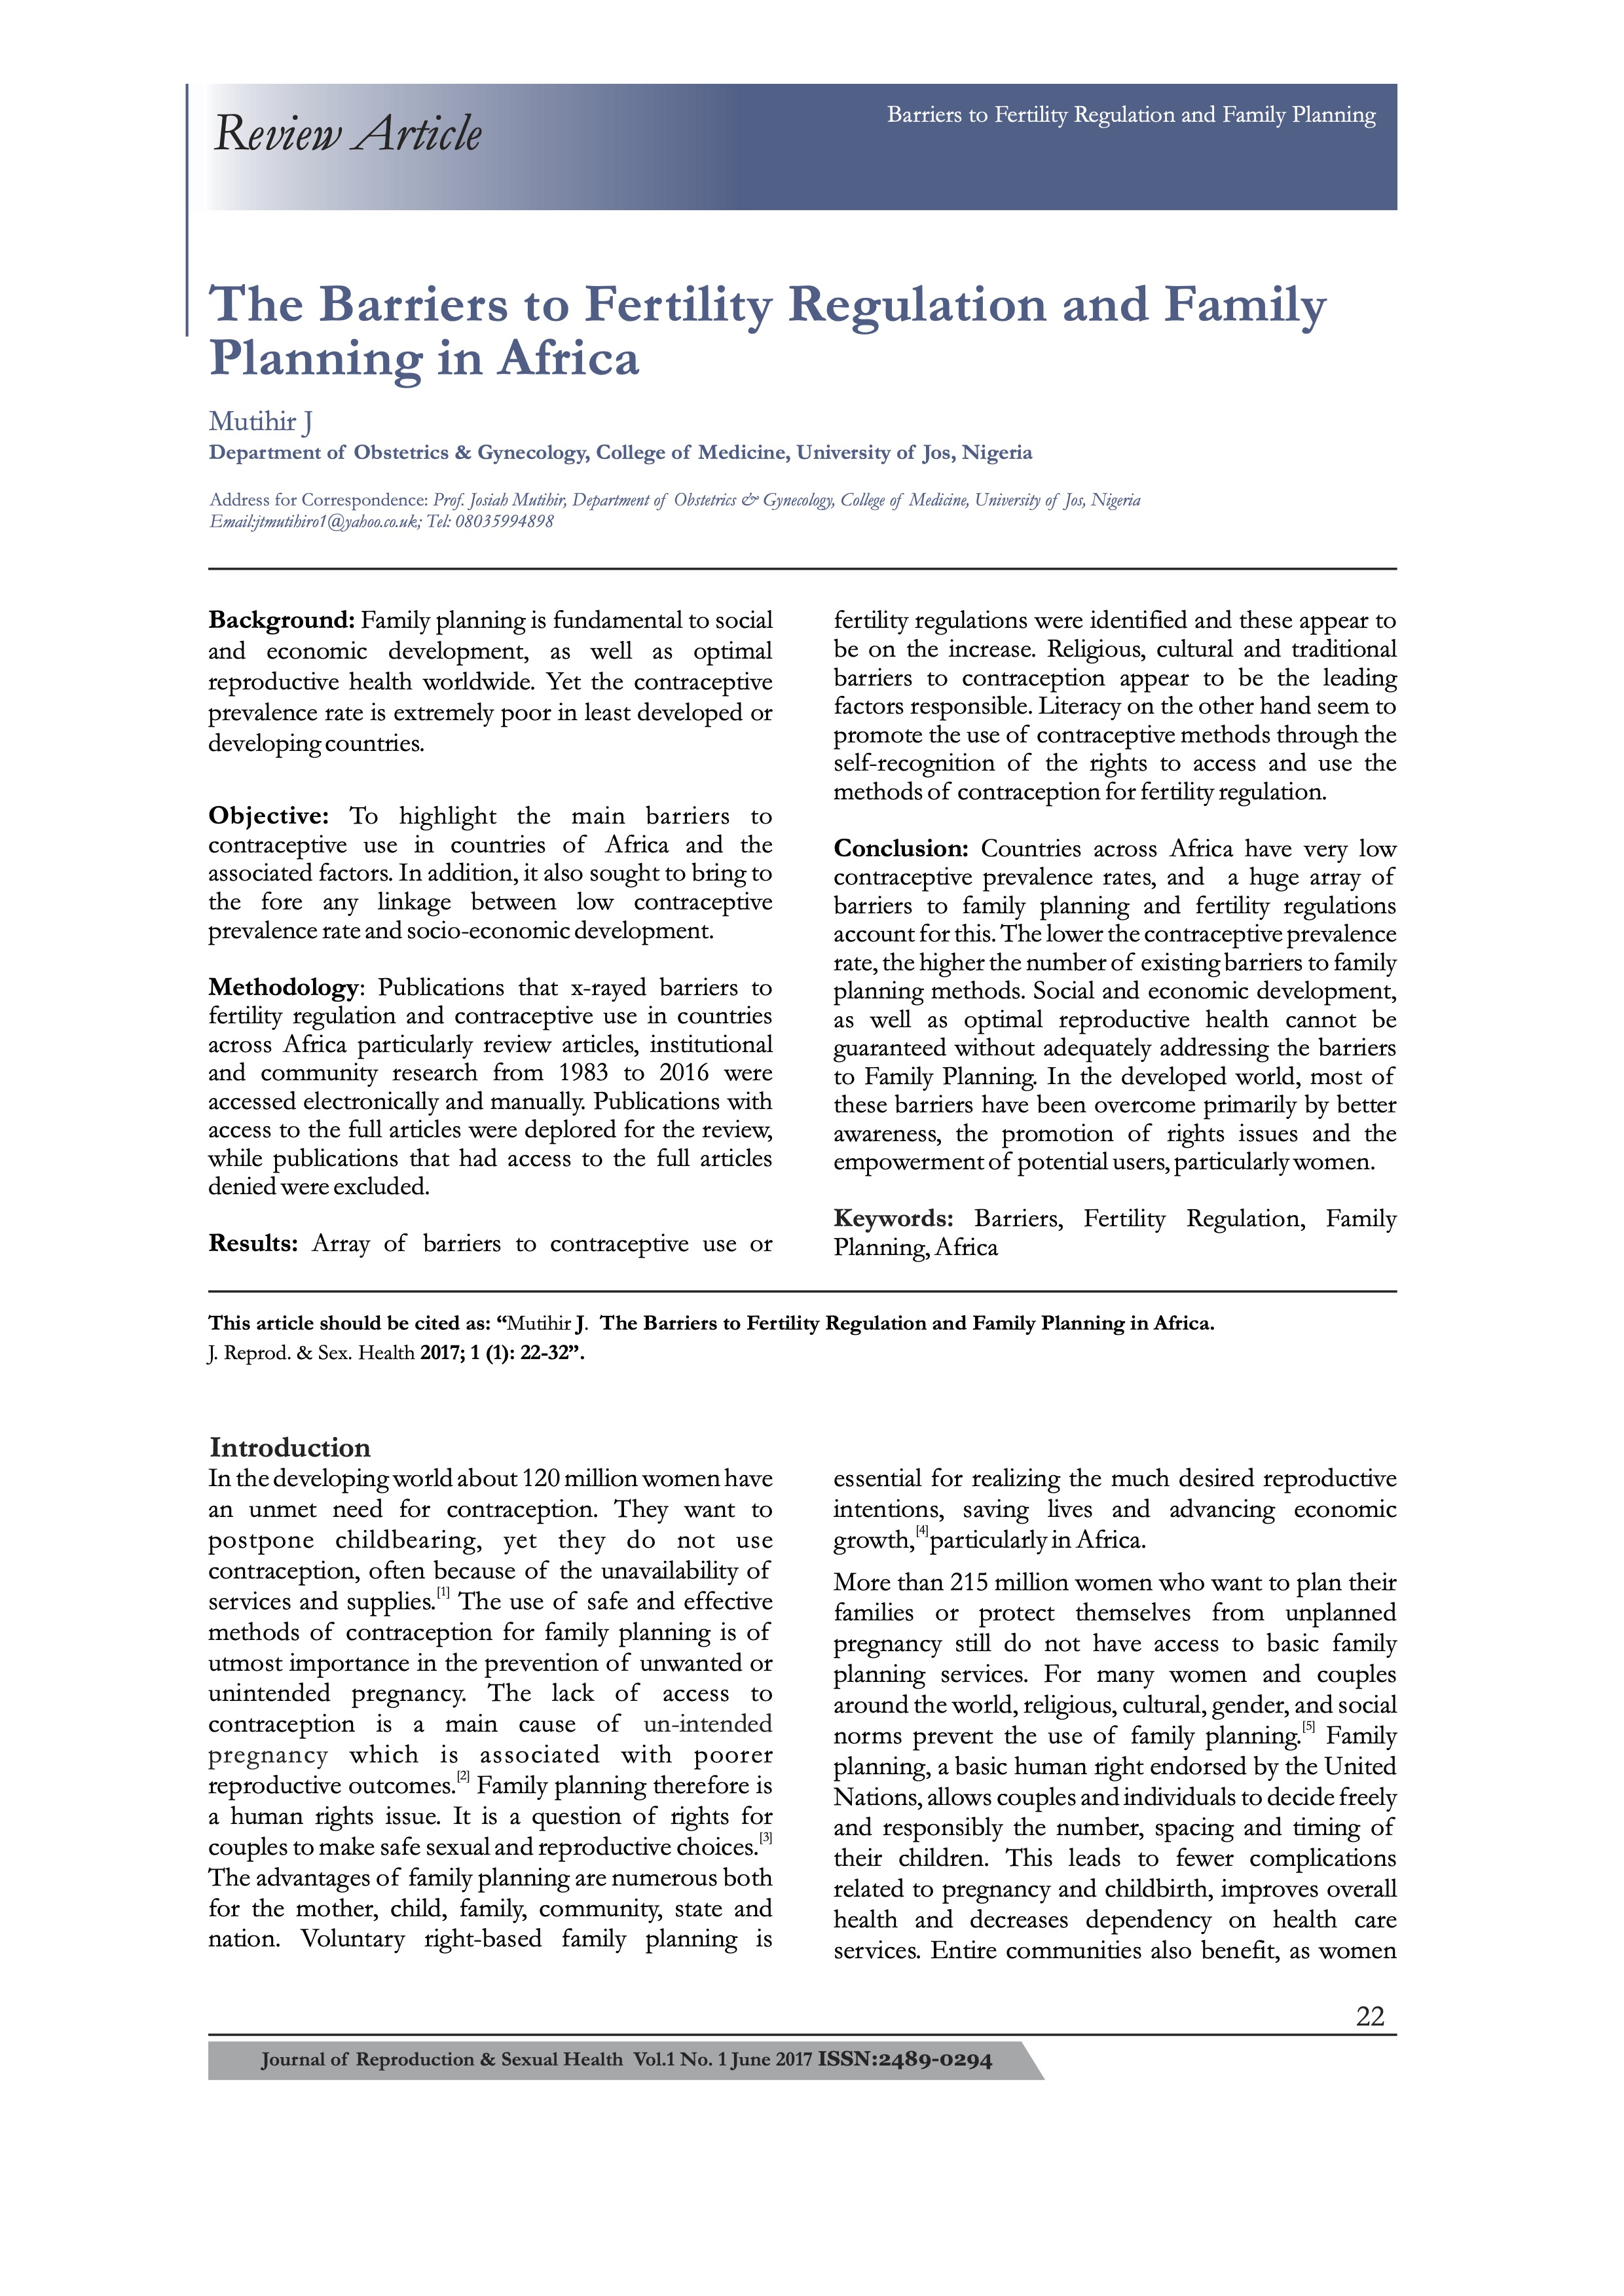 The Barriers to Fertility Regulation and Family Planning in Africa